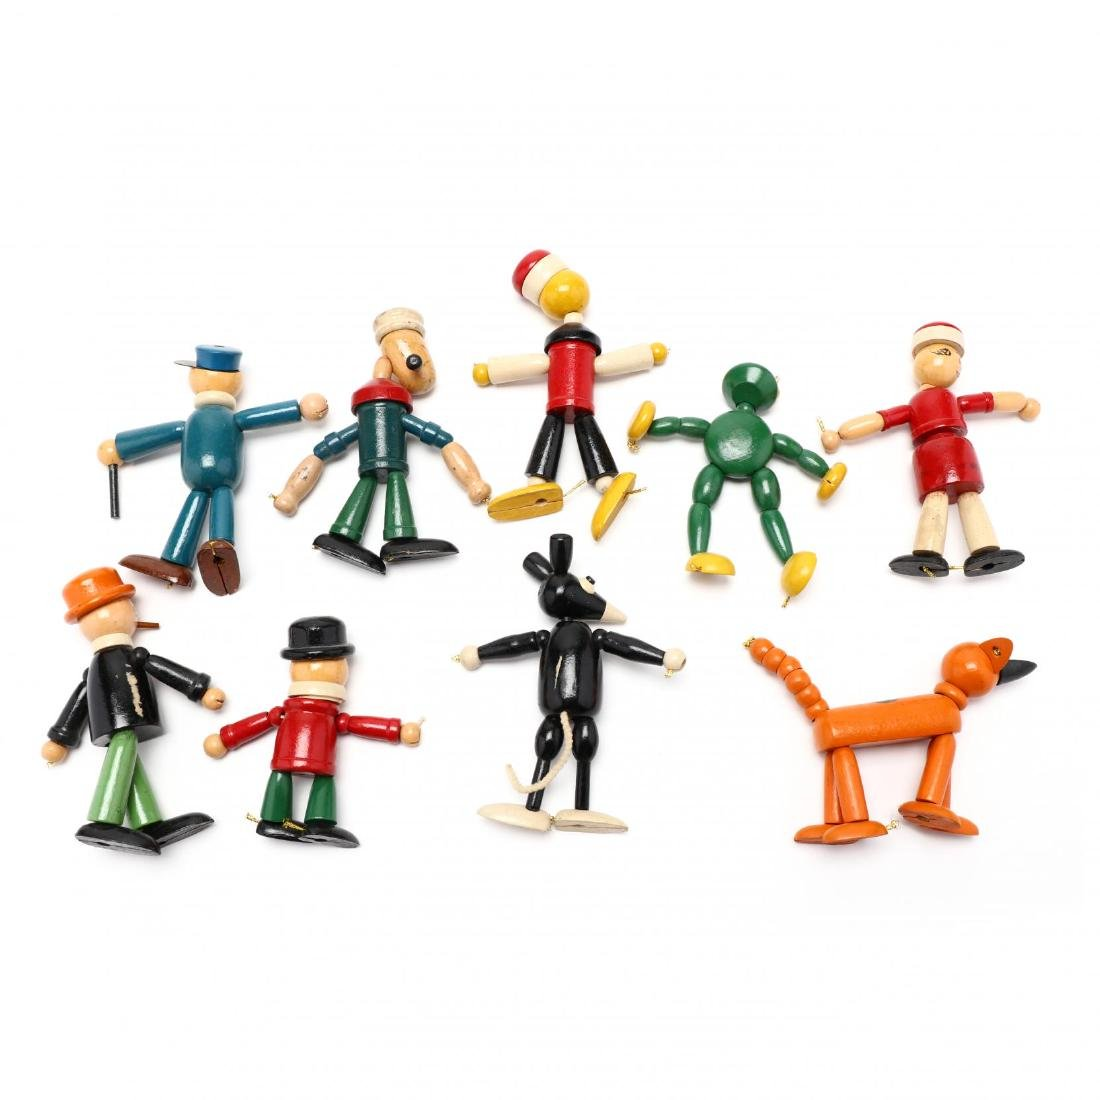 A Group of Articulated Wooden Toys - 9